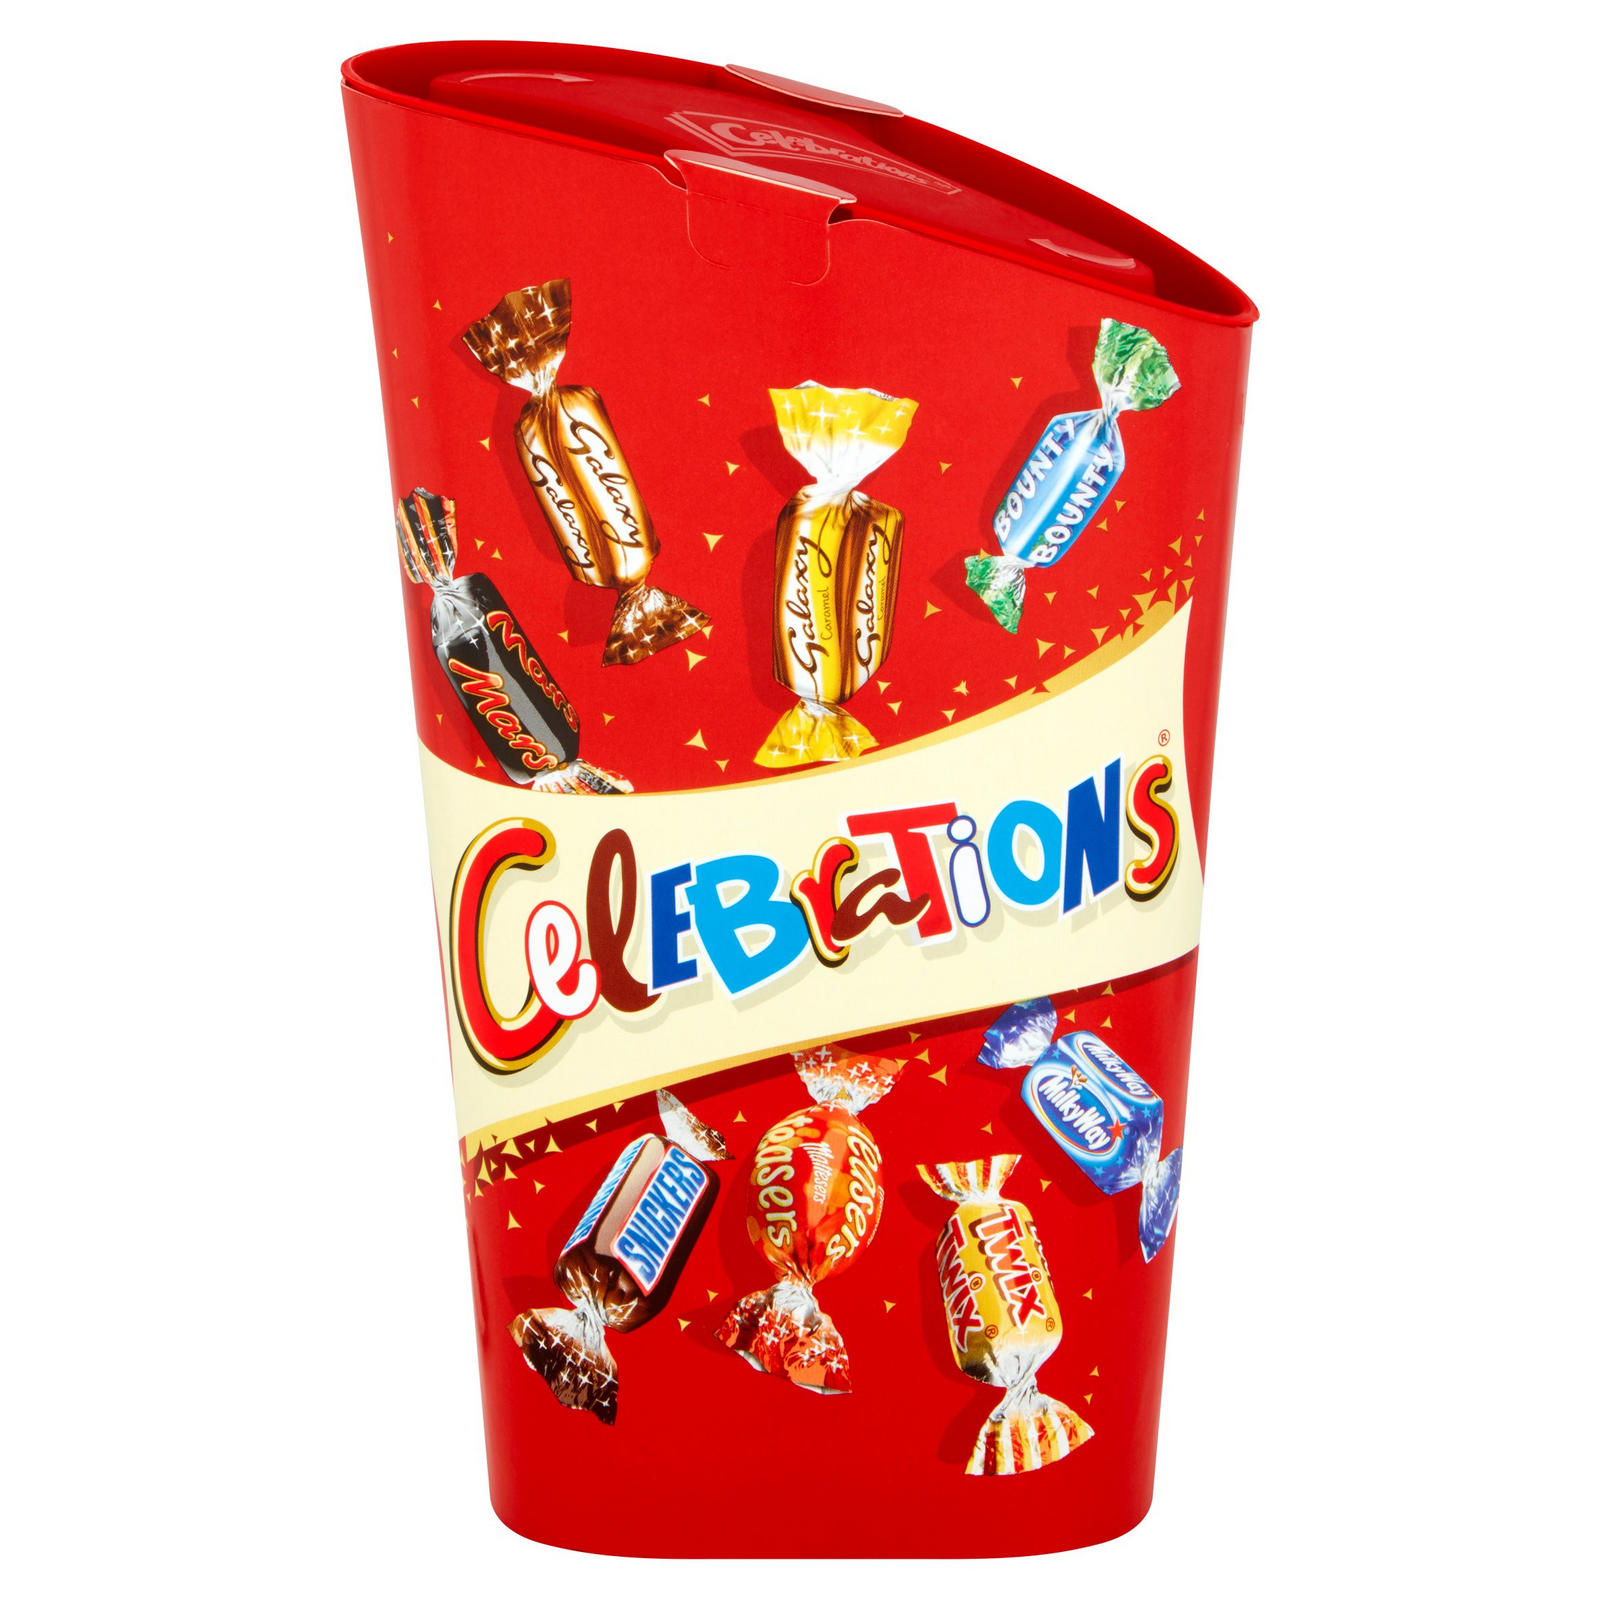 Celebration chocolates